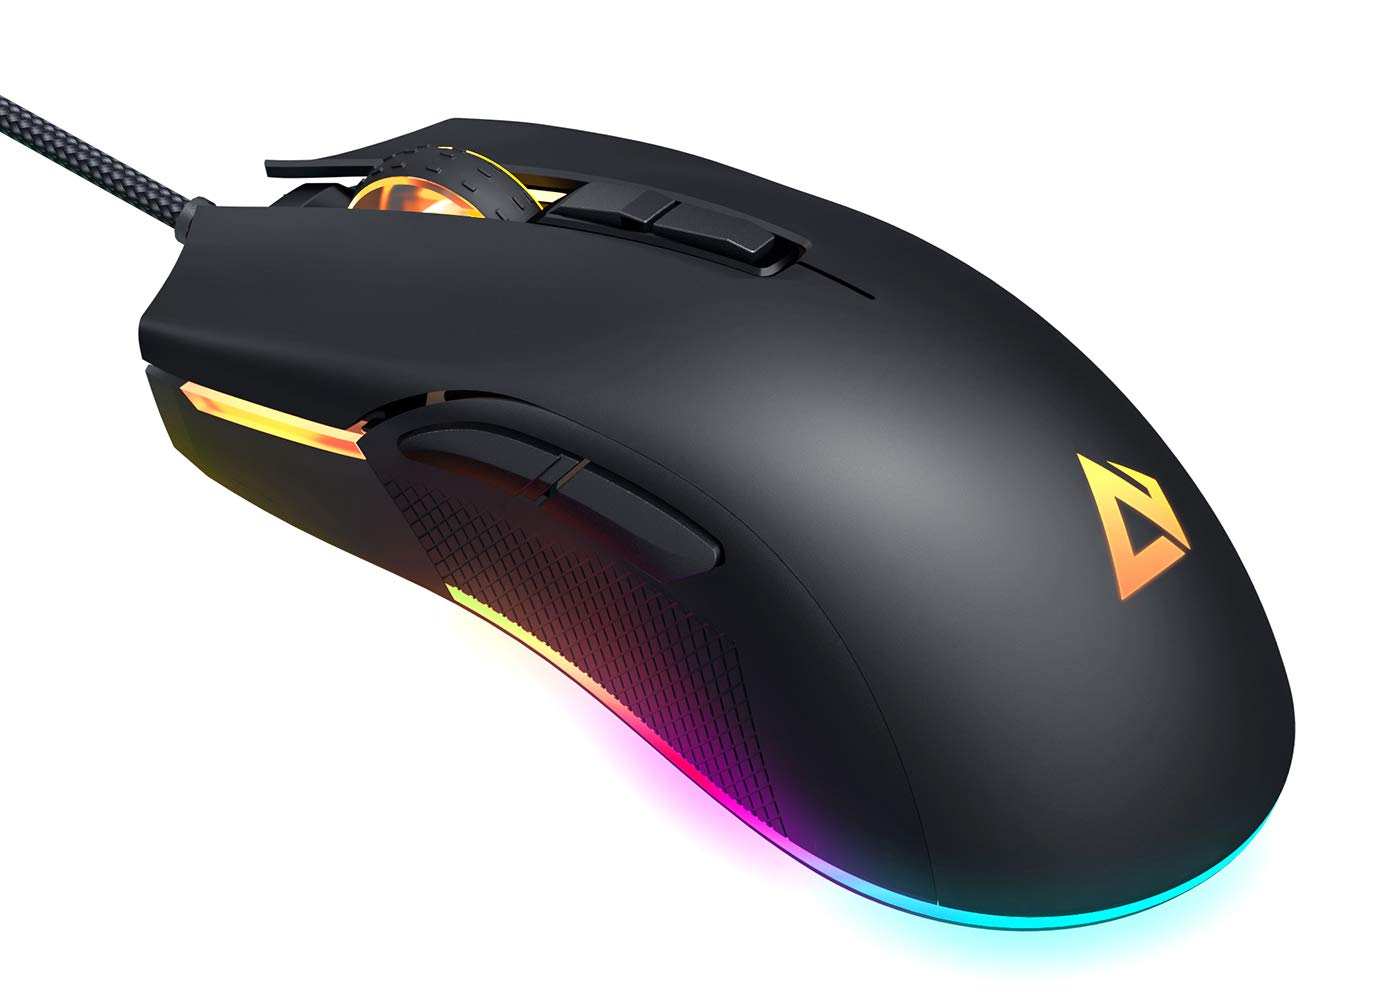 AUKEY RGB Gaming Mouse Wired with 6 Adjustable DPI Levels from 600 to 5000 3325 Optical Sensor , 16.8 Million Color, Ergonomic PC Computer Mouse with Programmable Buttons, Braided Cable, Black